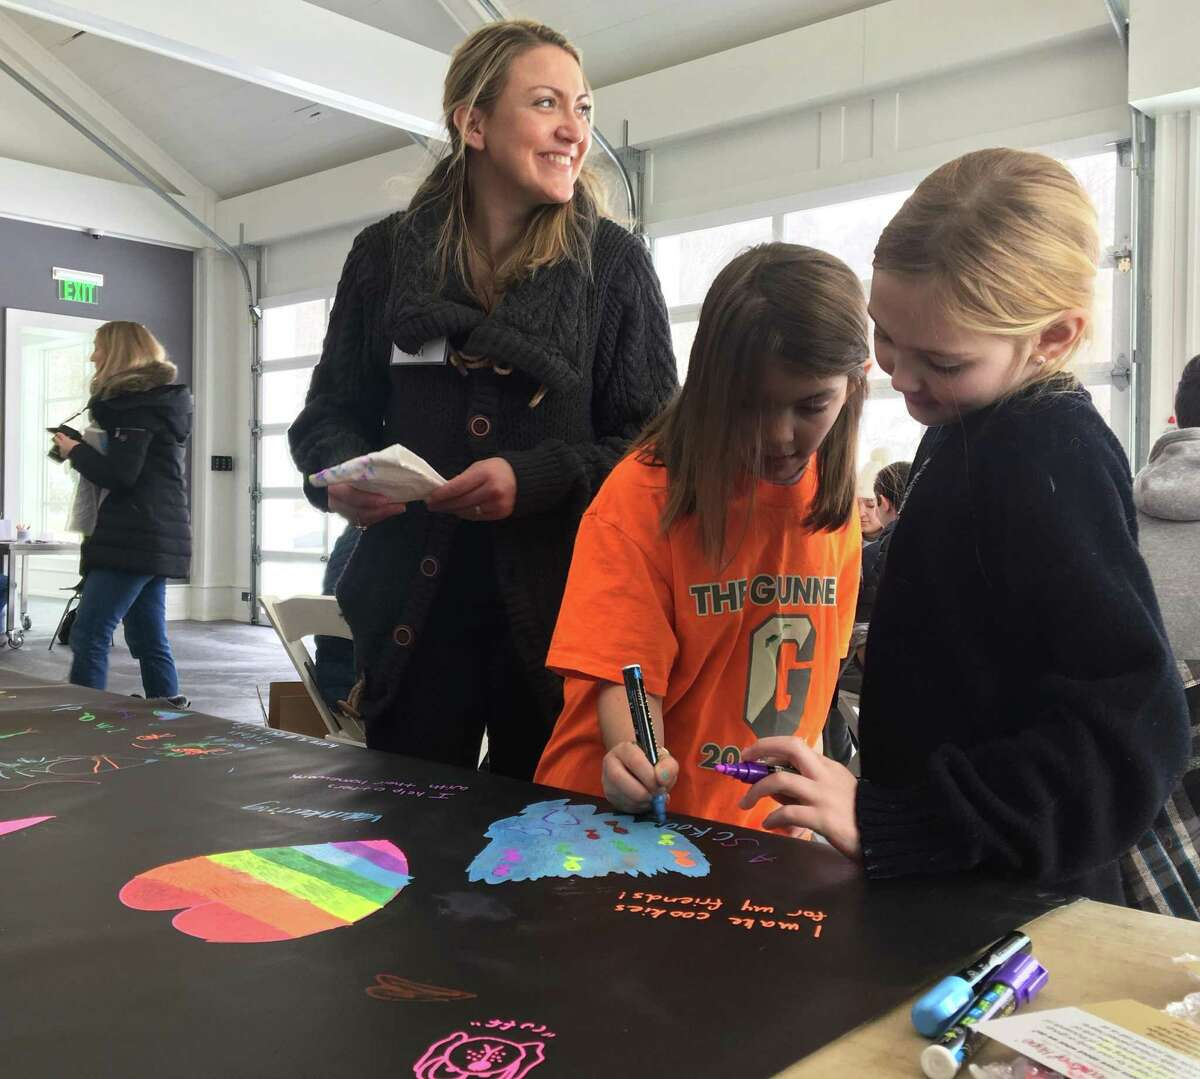 Neely Gritti, center, and Audrey Psomas, right, paint a mural at the inaugural Washington Gives event at the Judy Black Memorial Park and Gardens in Washington, Conn. The event commemorates Martin Luther King Jr. Day with service projects.